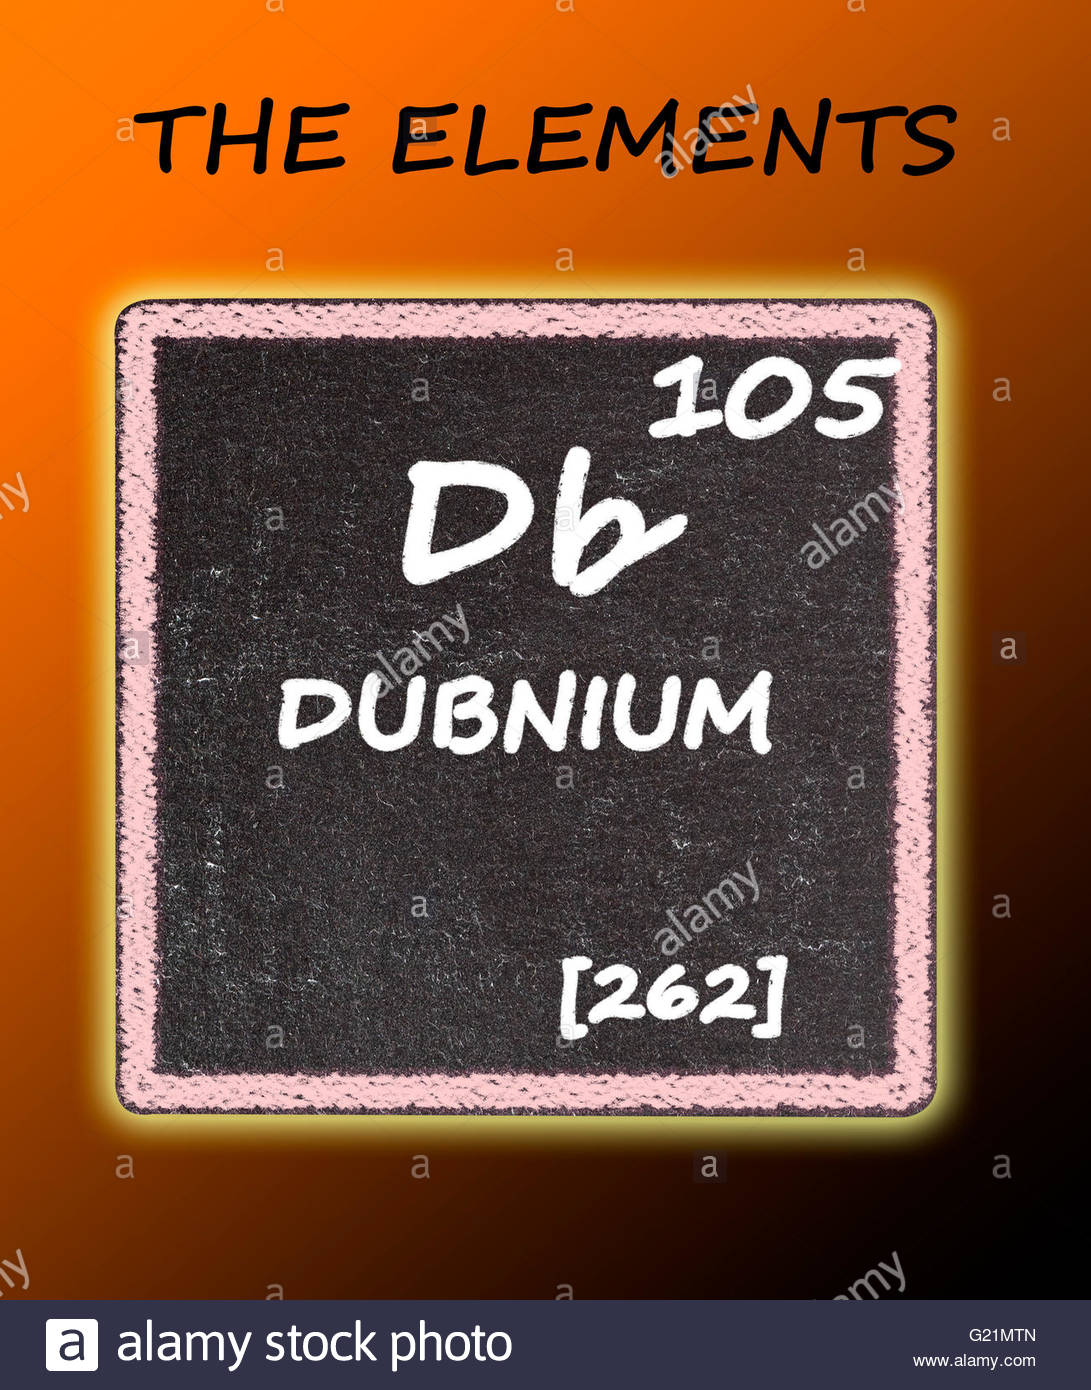 Dubnium details from the periodic table stock photo 104529845 alamy dubnium details from the periodic table urtaz Choice Image